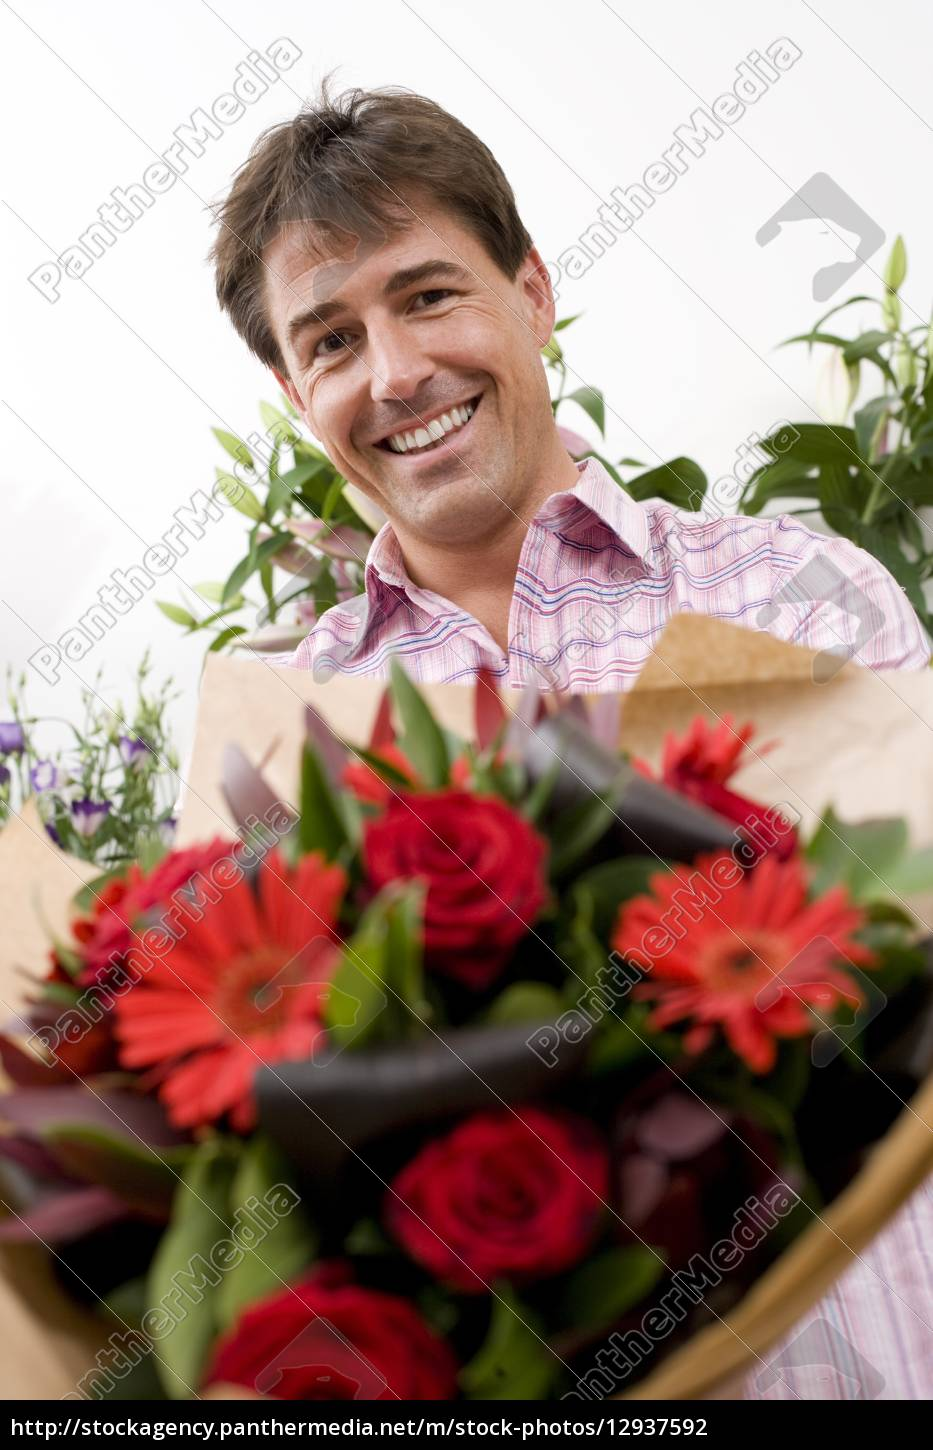 Man with bouquet of flowers smiling portrait low royalty free royalty free photo 12937592 man with bouquet of flowers smiling portrait low angle view izmirmasajfo